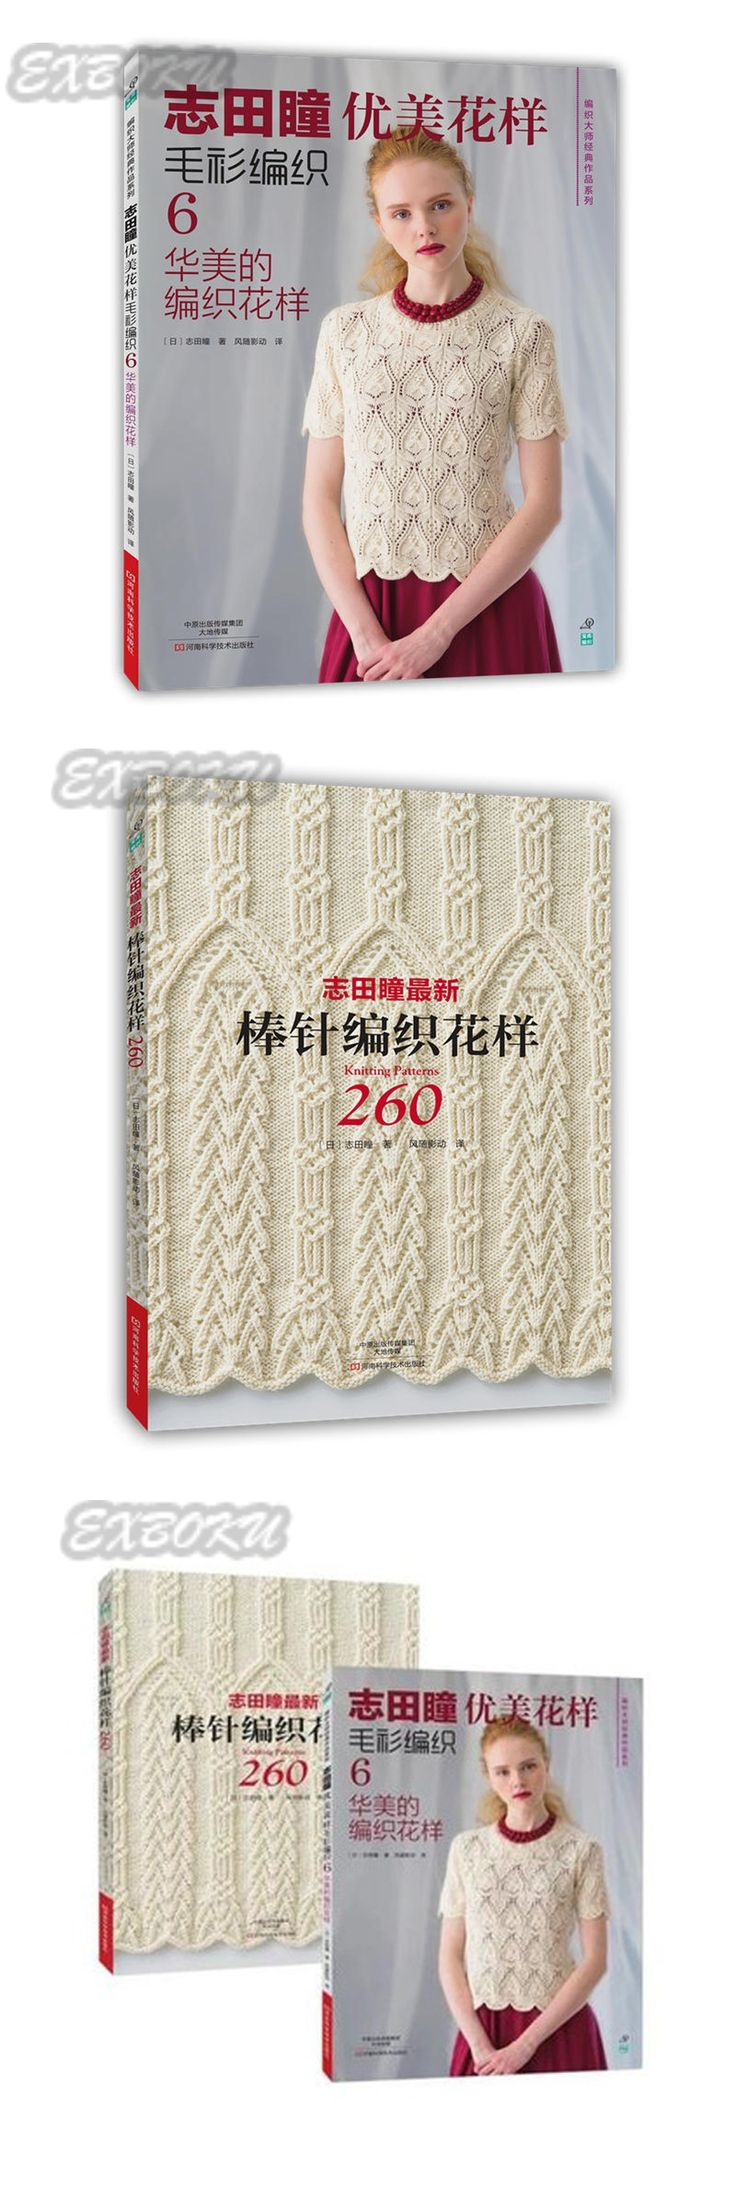 d6a24bf24d97e 2pc set Knitting Patterns Book 260 BY HITOMI SHIDA   Japanese Classic weave patterns  sweater